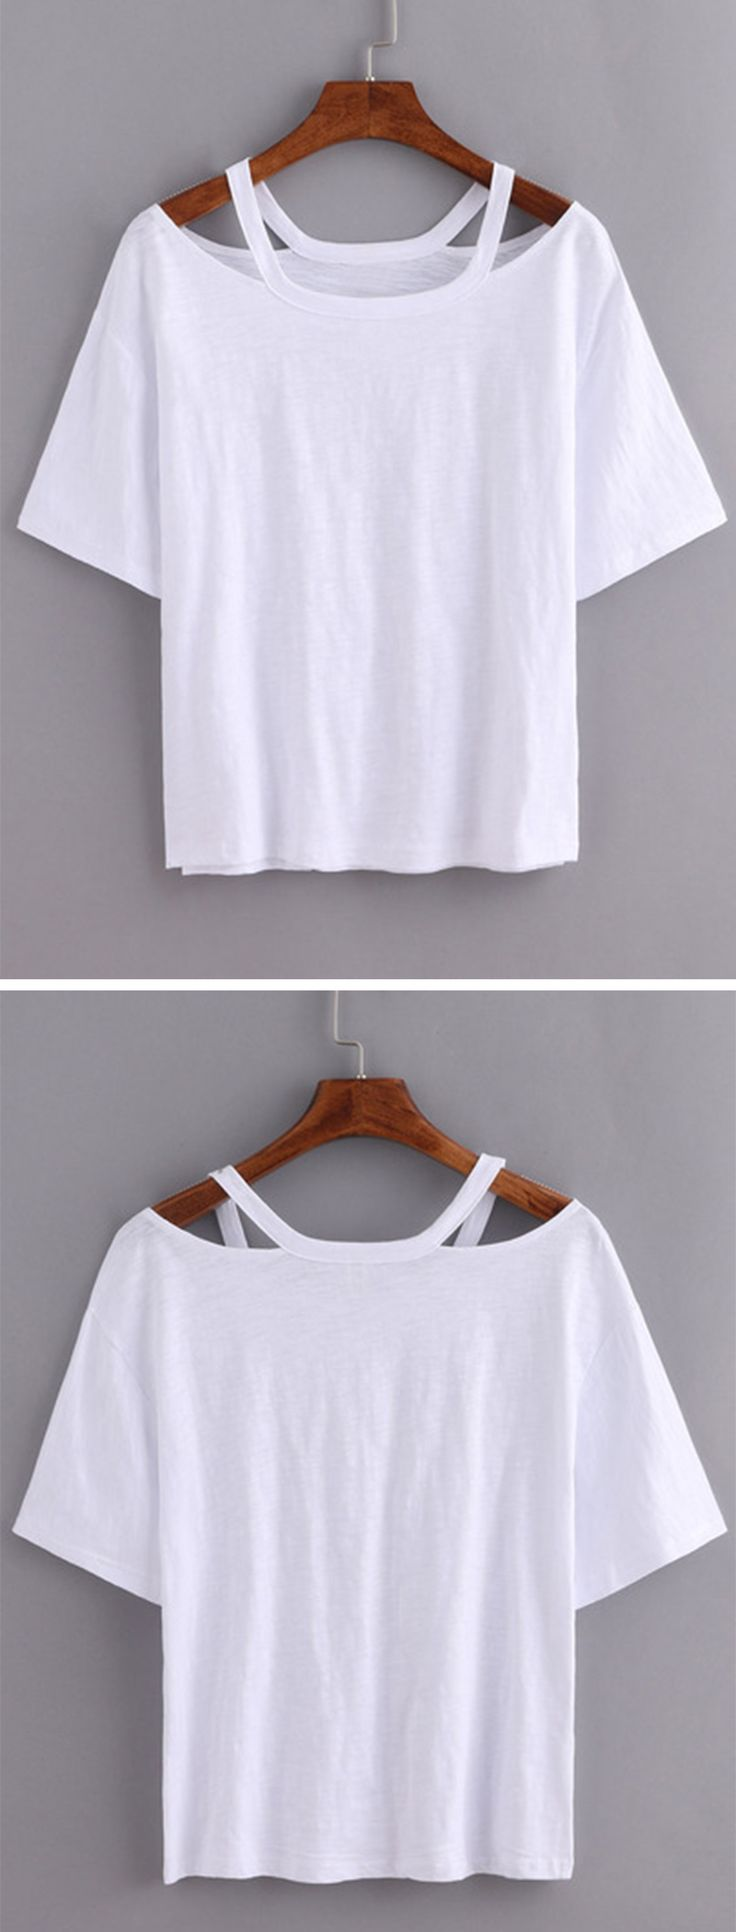 Cutout Loose-Fit White T-shirt with ♥ from JDzigner www.jdzigner.com